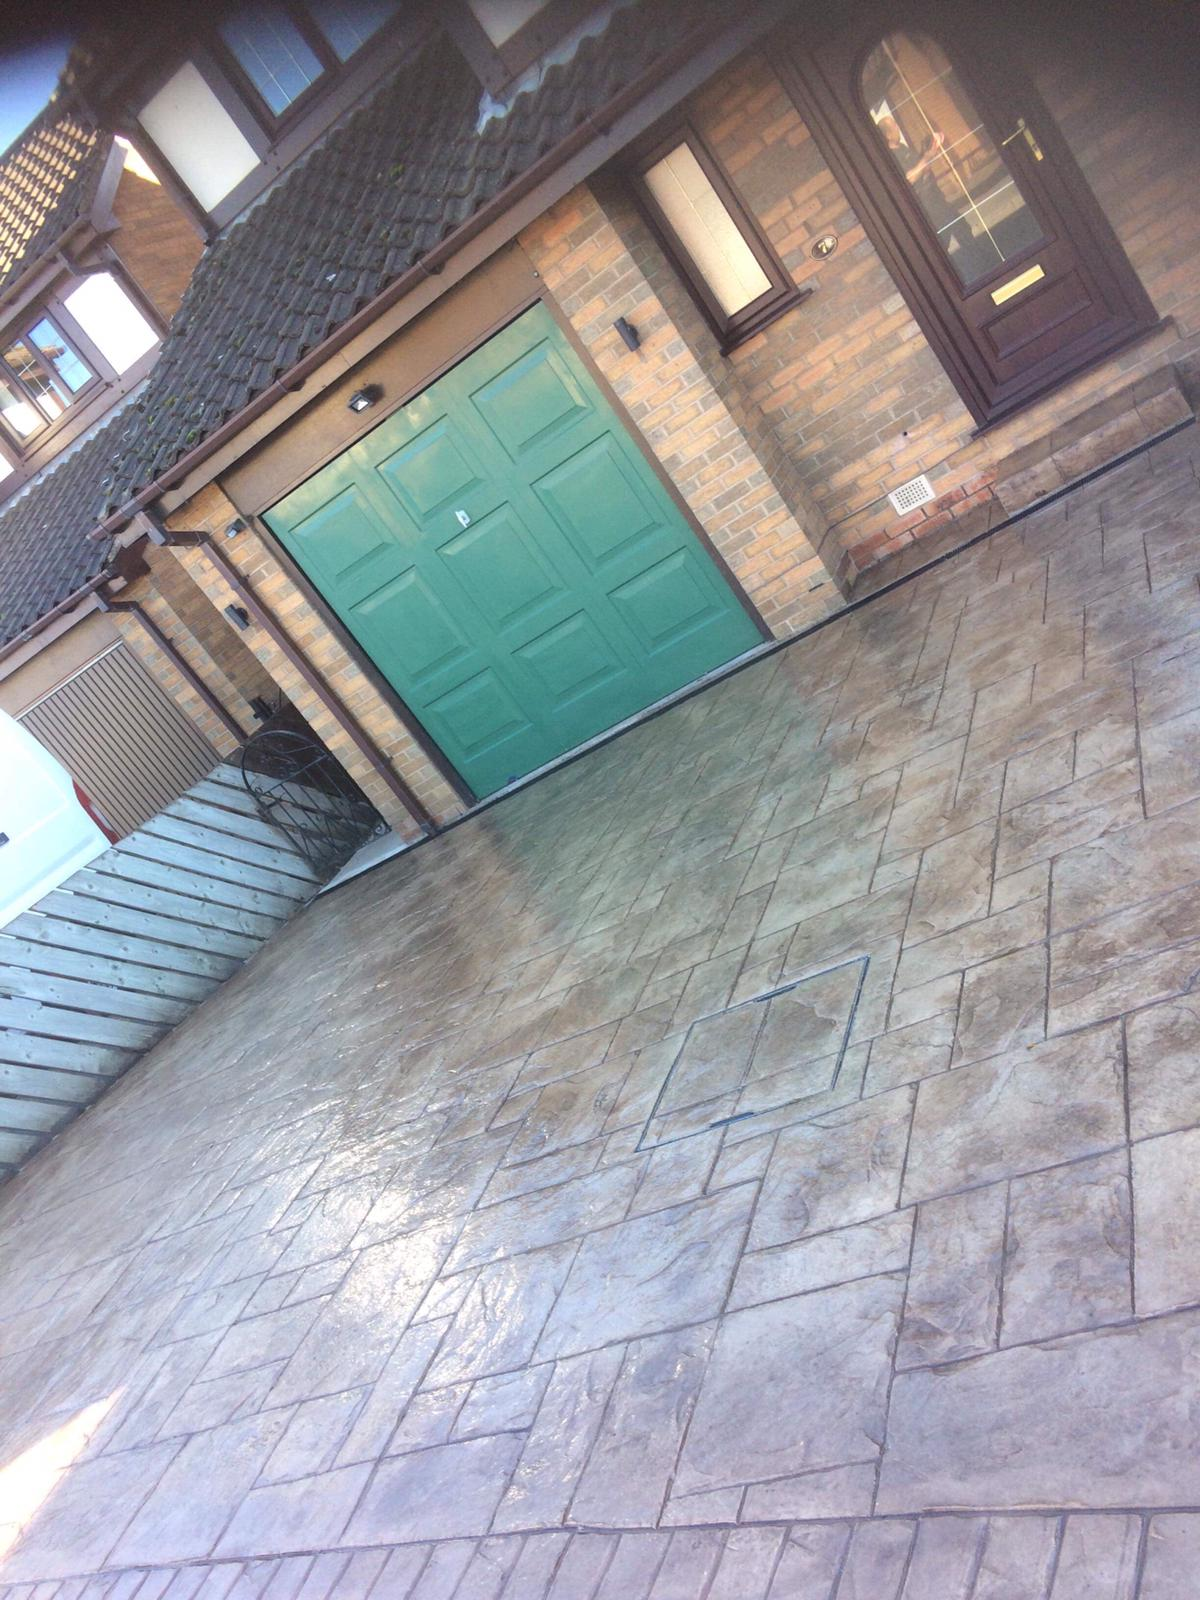 How to look after you pattern imprinted concrete driveway – PIC Driveway